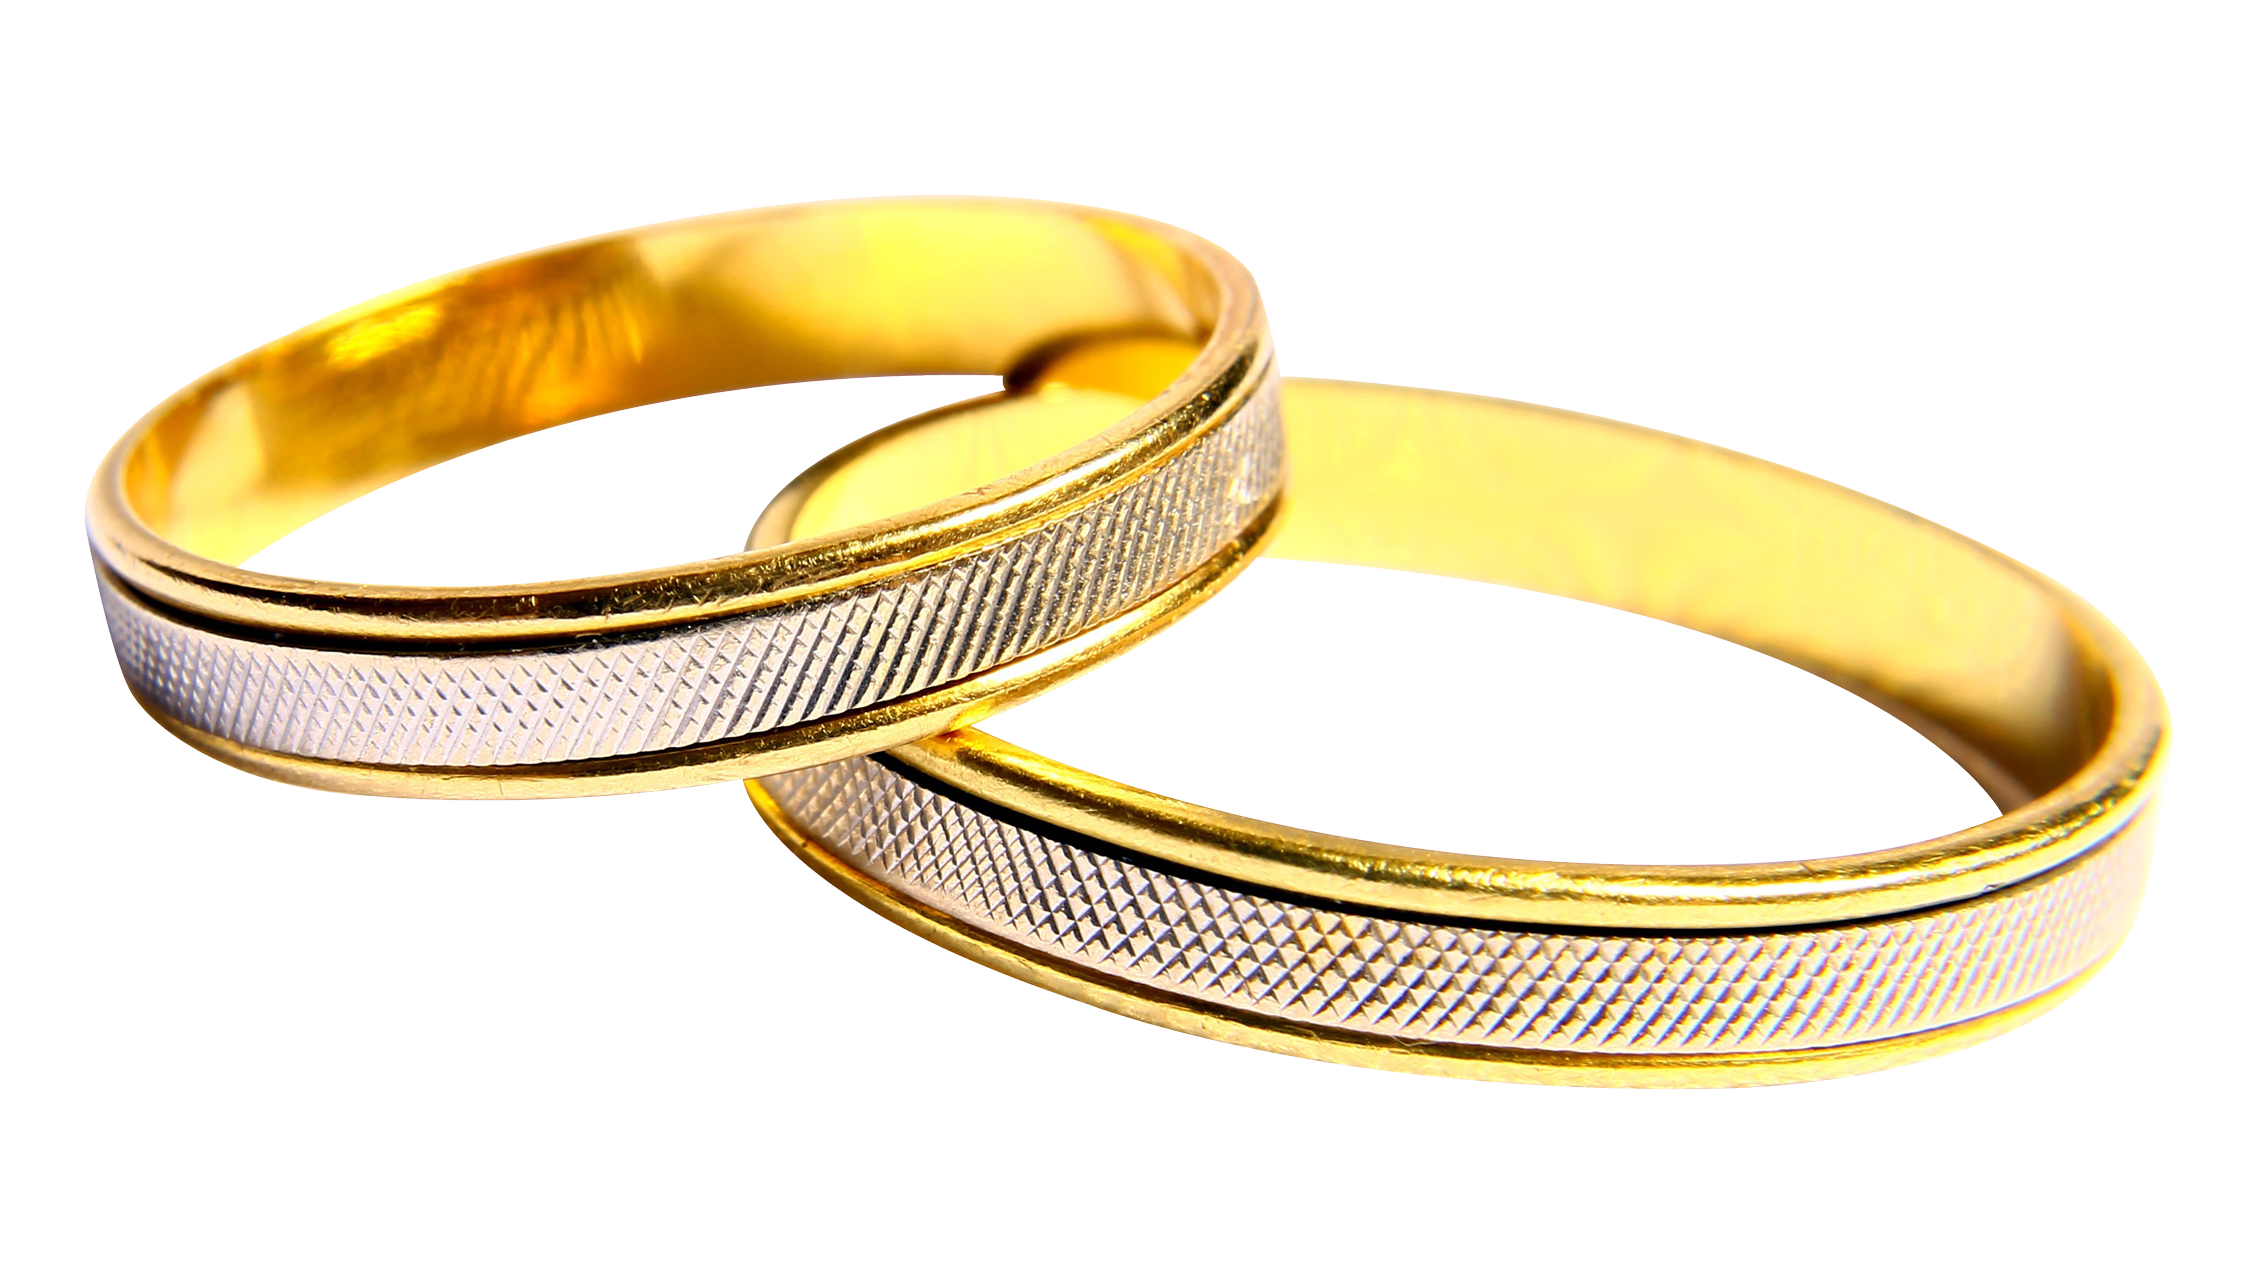 Wedding Rings PNG Transparent Image - Wedding PNG Download